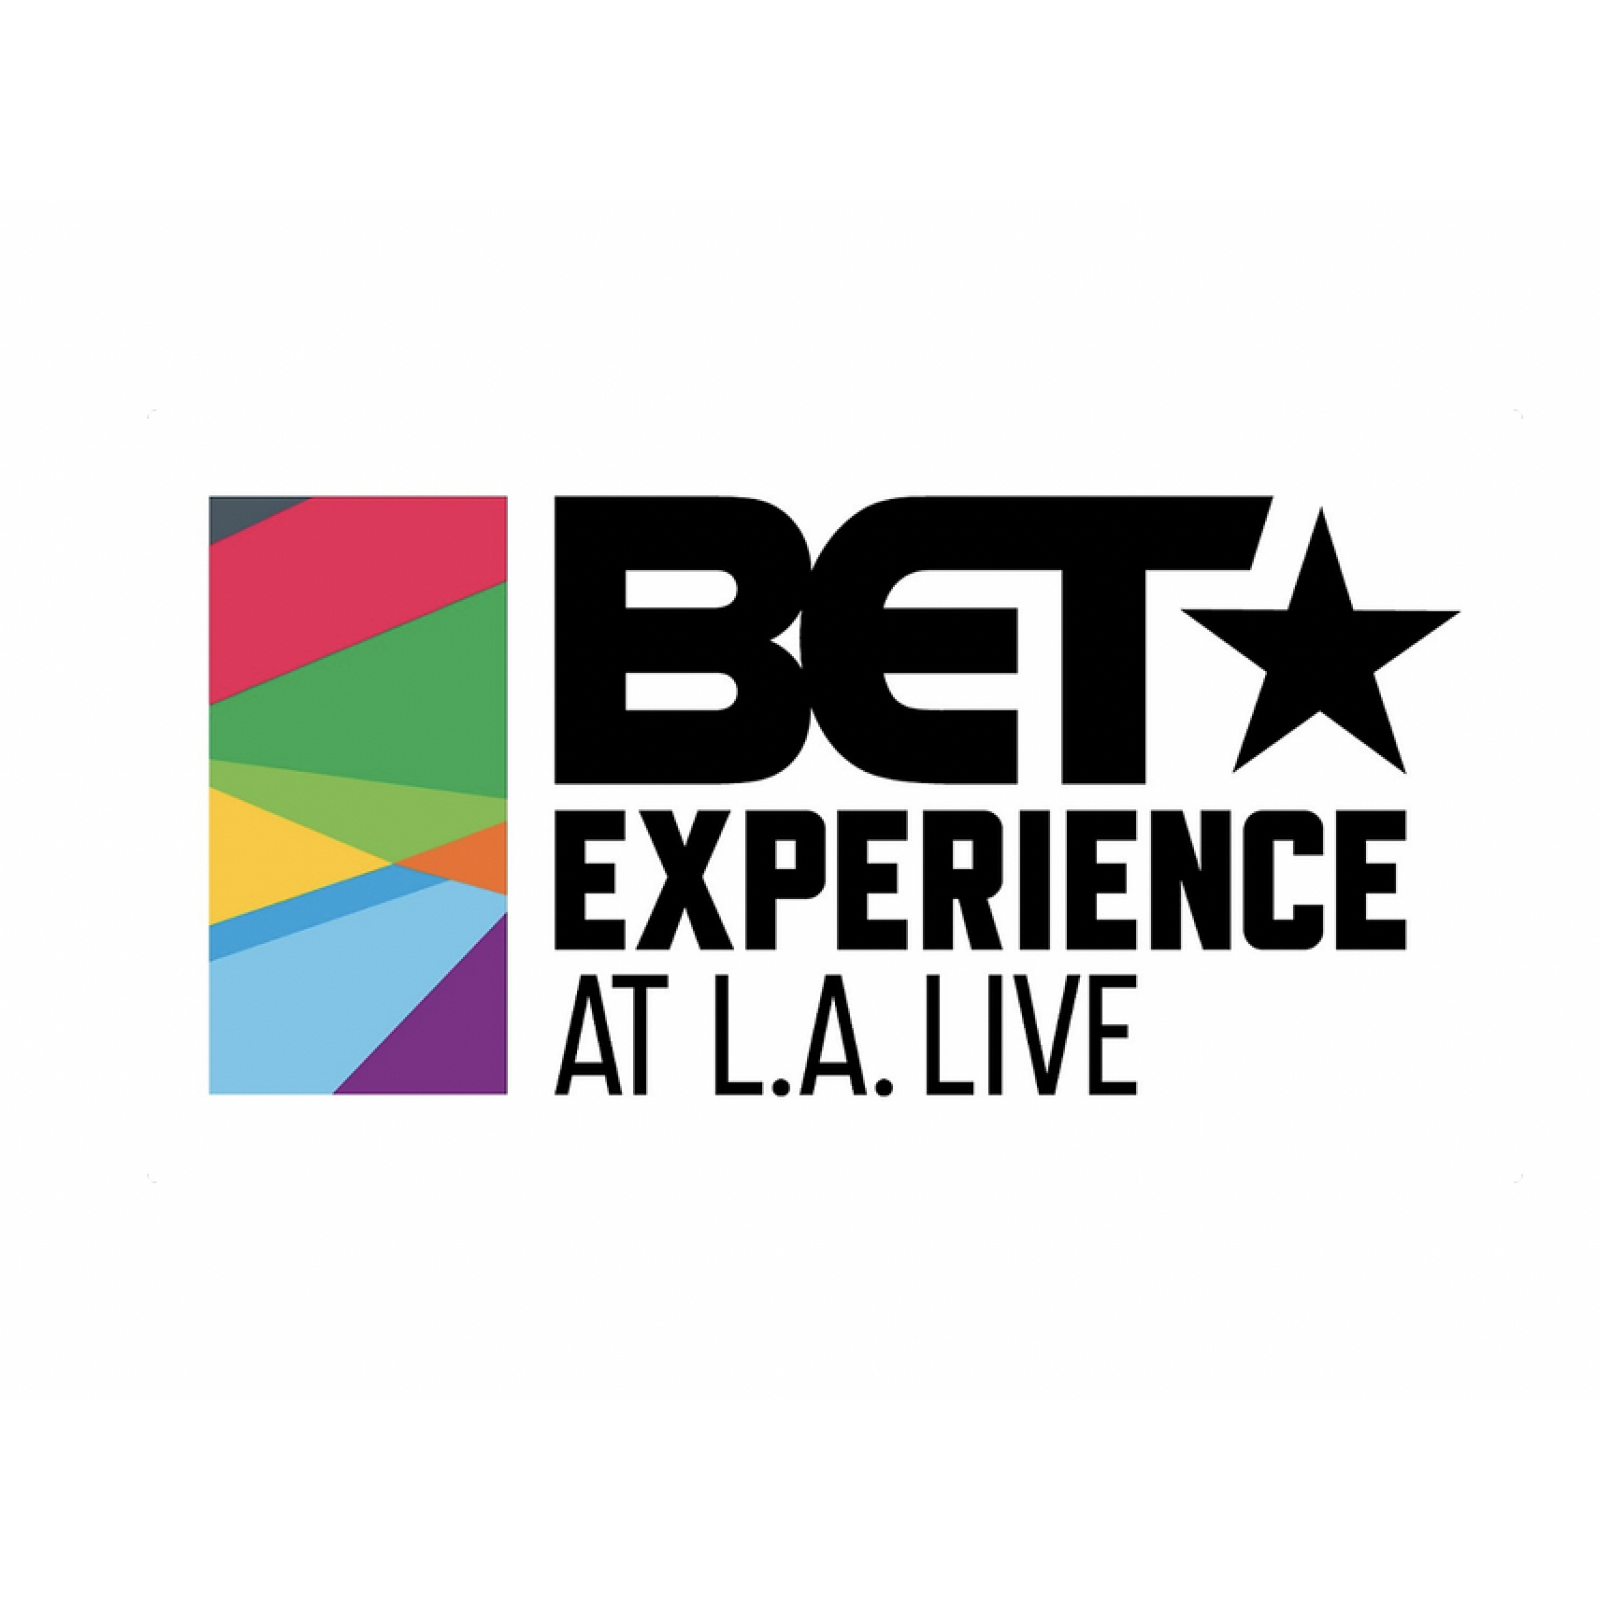 Logo of Bet Experience